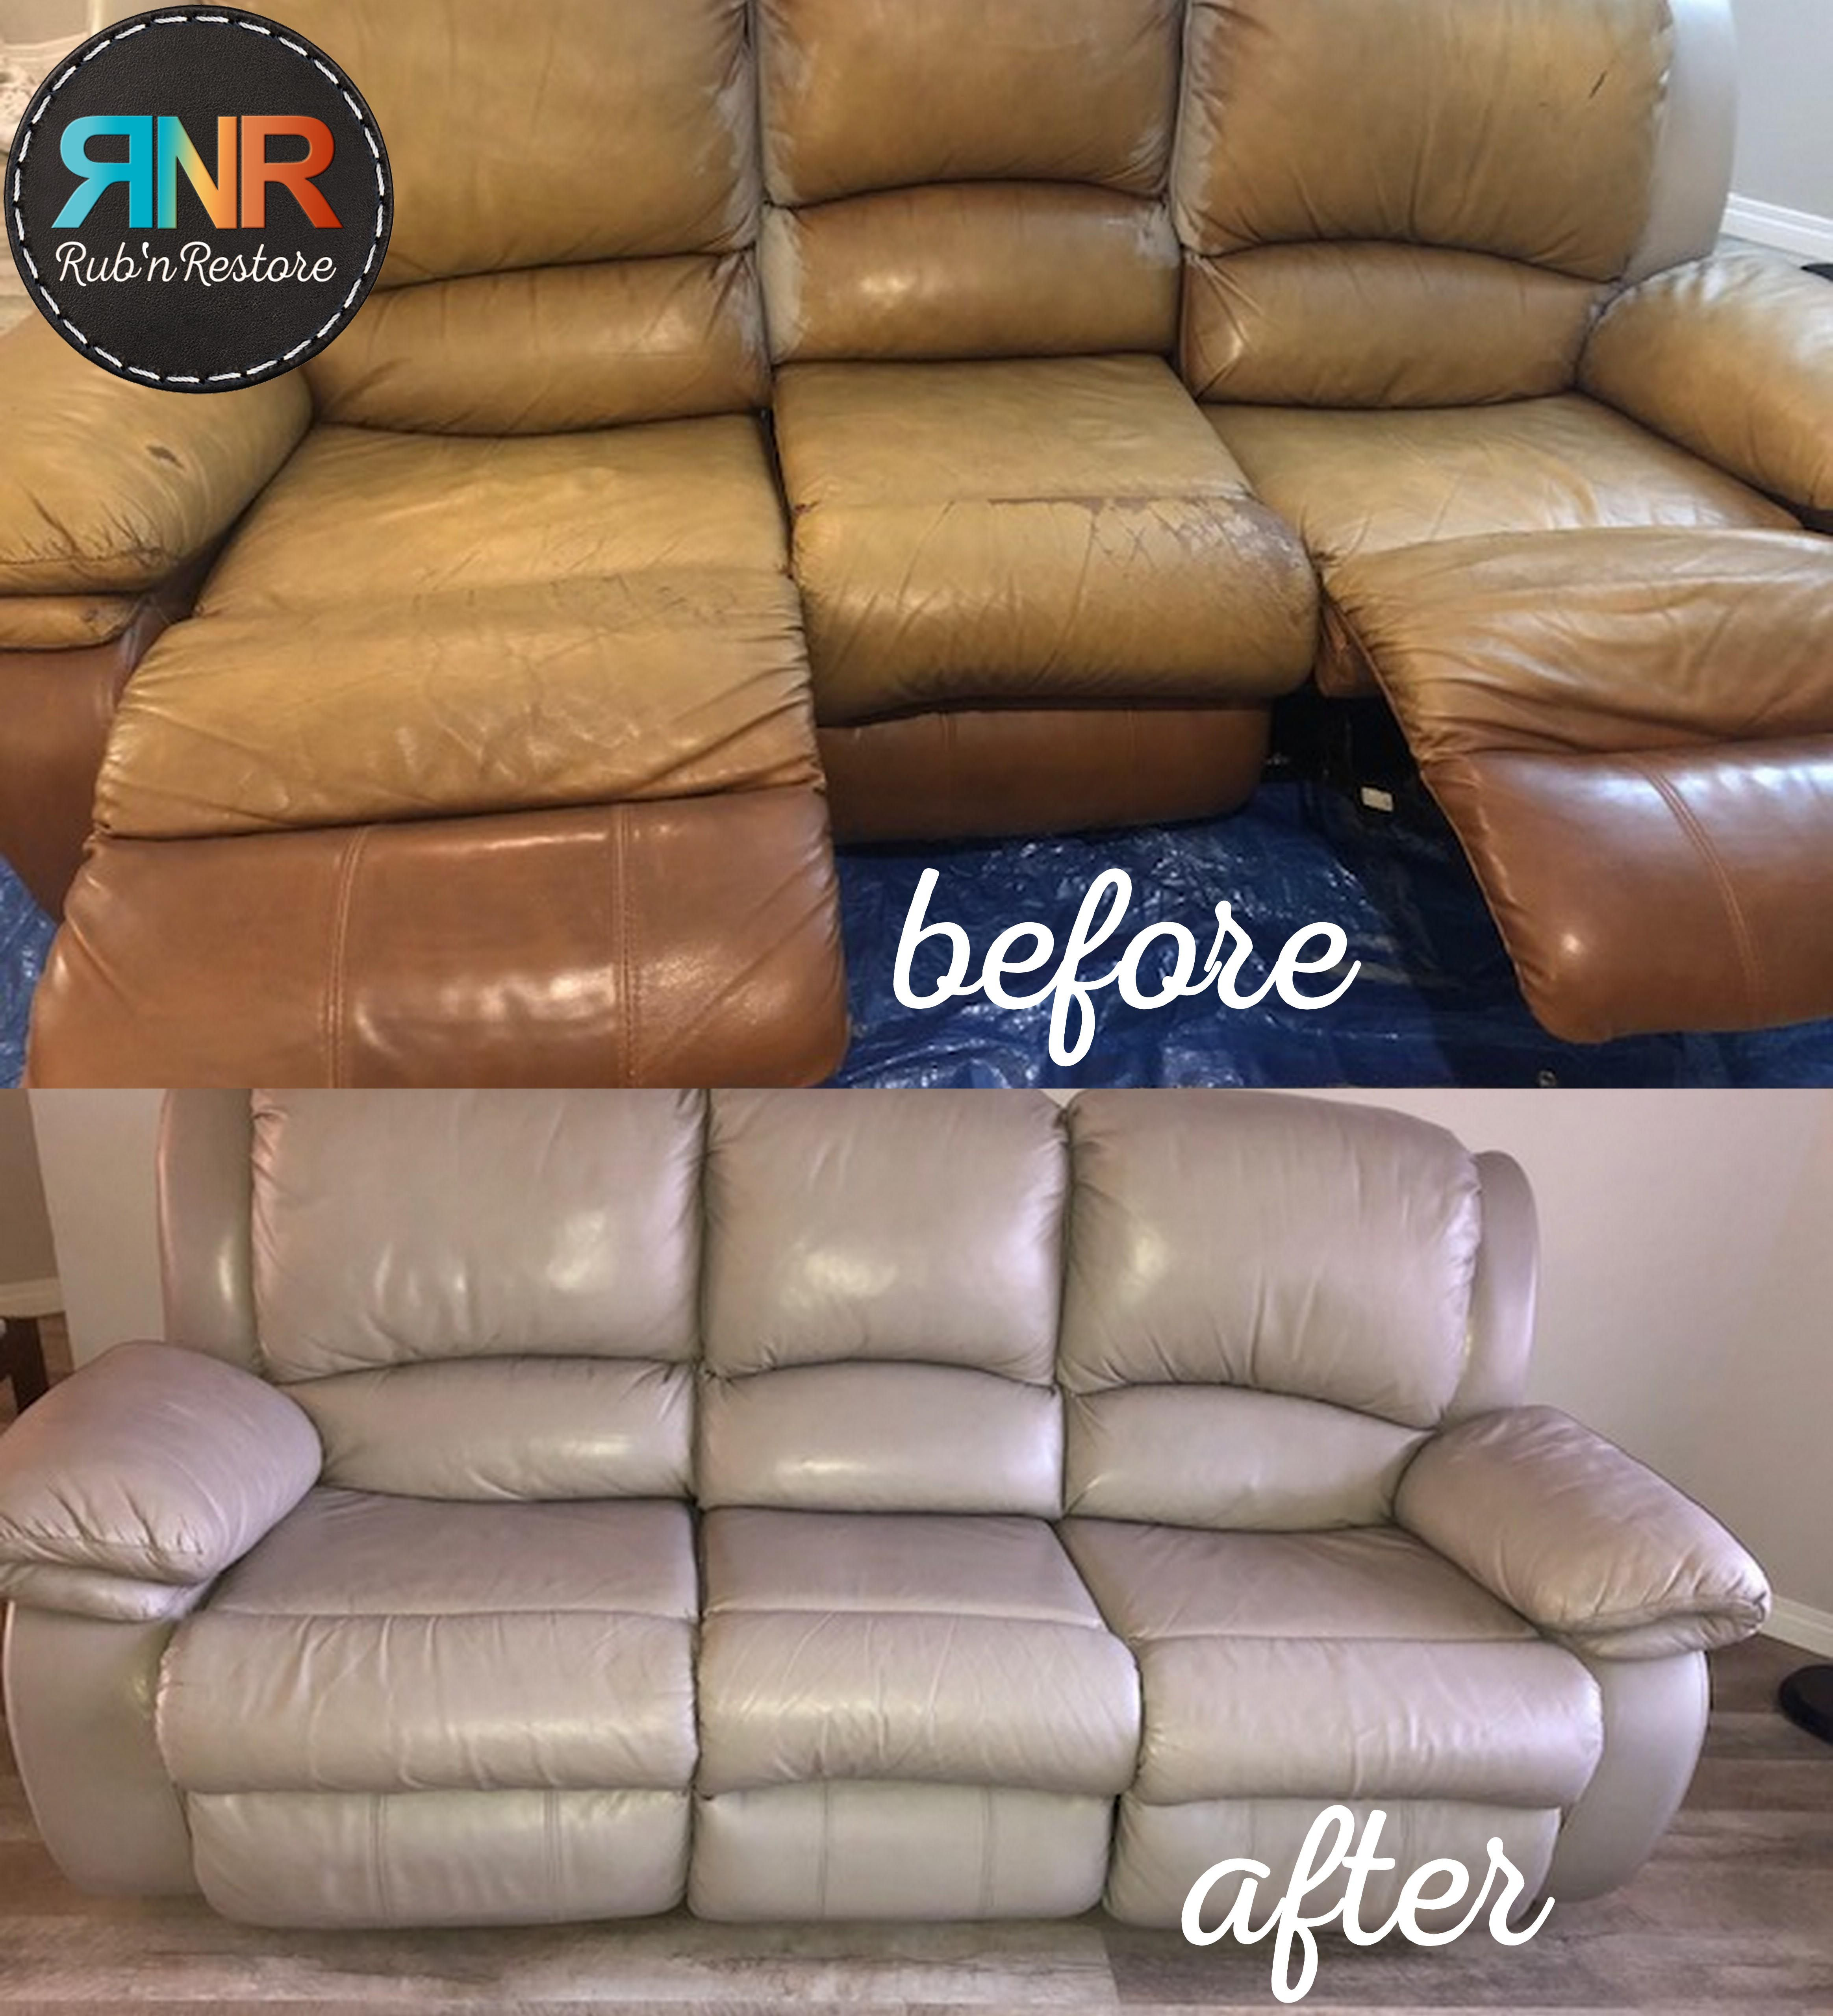 Stone Gray Conditioning Color For Vinyl Leather Upholstery Leather Restoration Vinyl Leather Dye